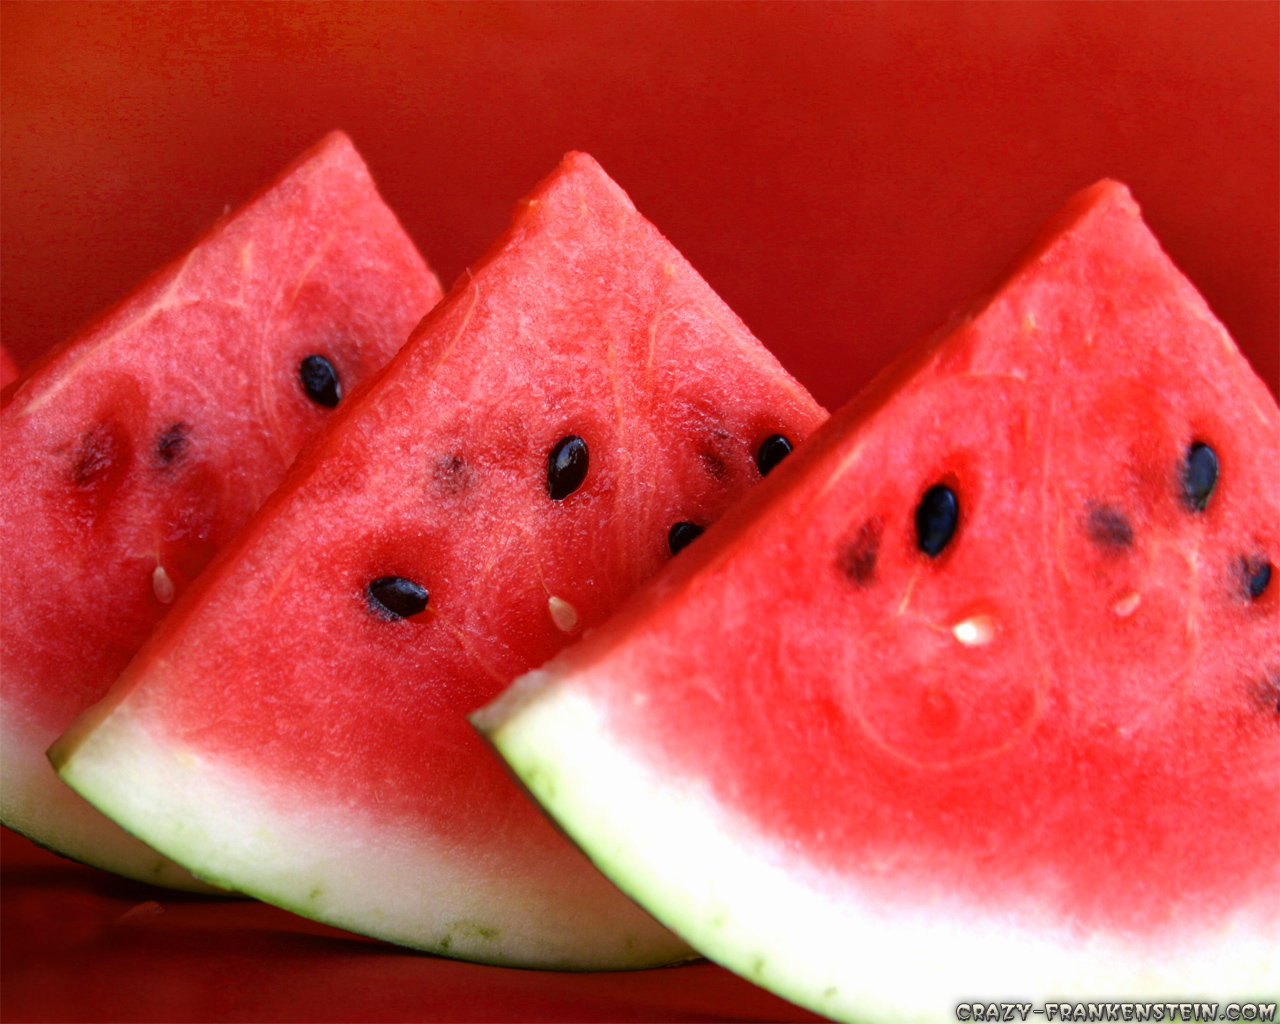 Wallpaper: Sweet watermelon. Resolution: 1024x768 | 1280x1024